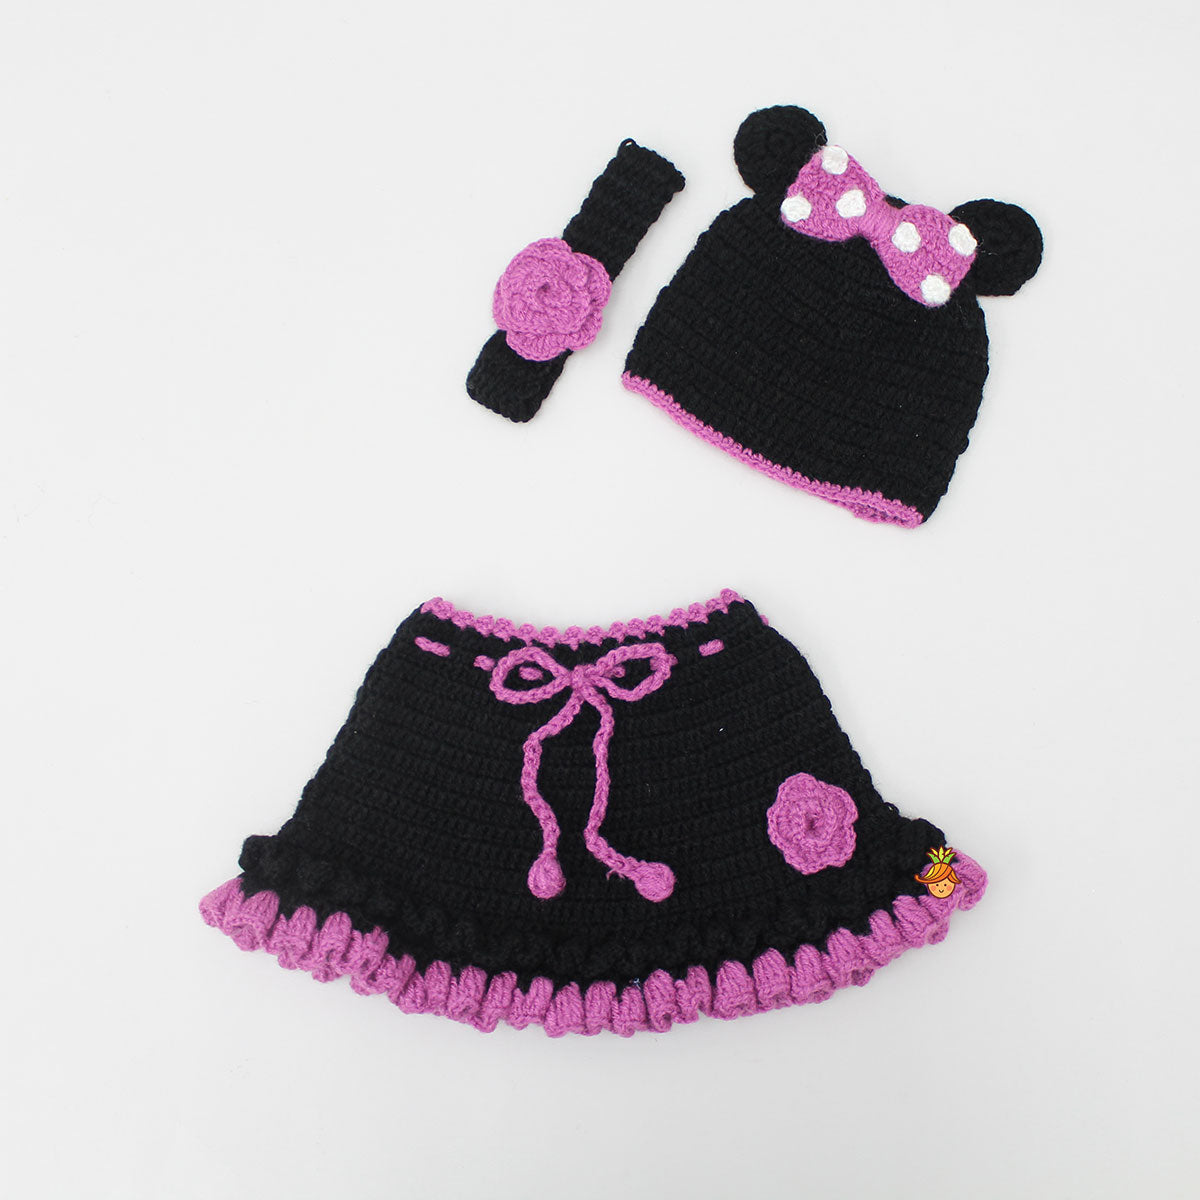 Knitted Minnie Theme Photo Prop Outfit